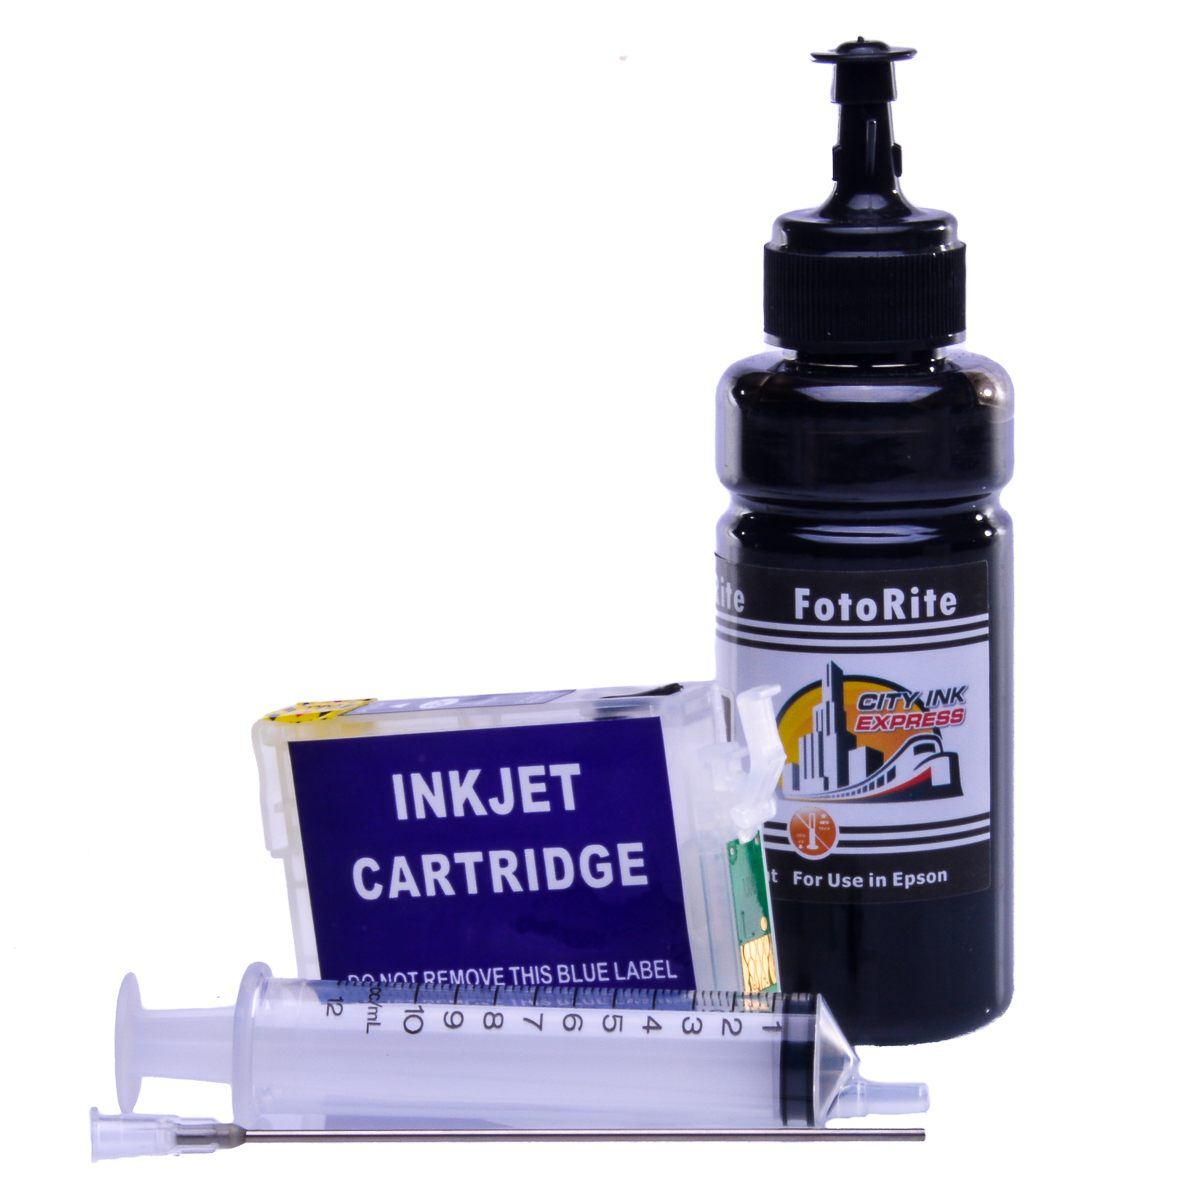 Refillable pigment Cheap printer cartridges for Epson Stylus SX218 C13T07114010  Black